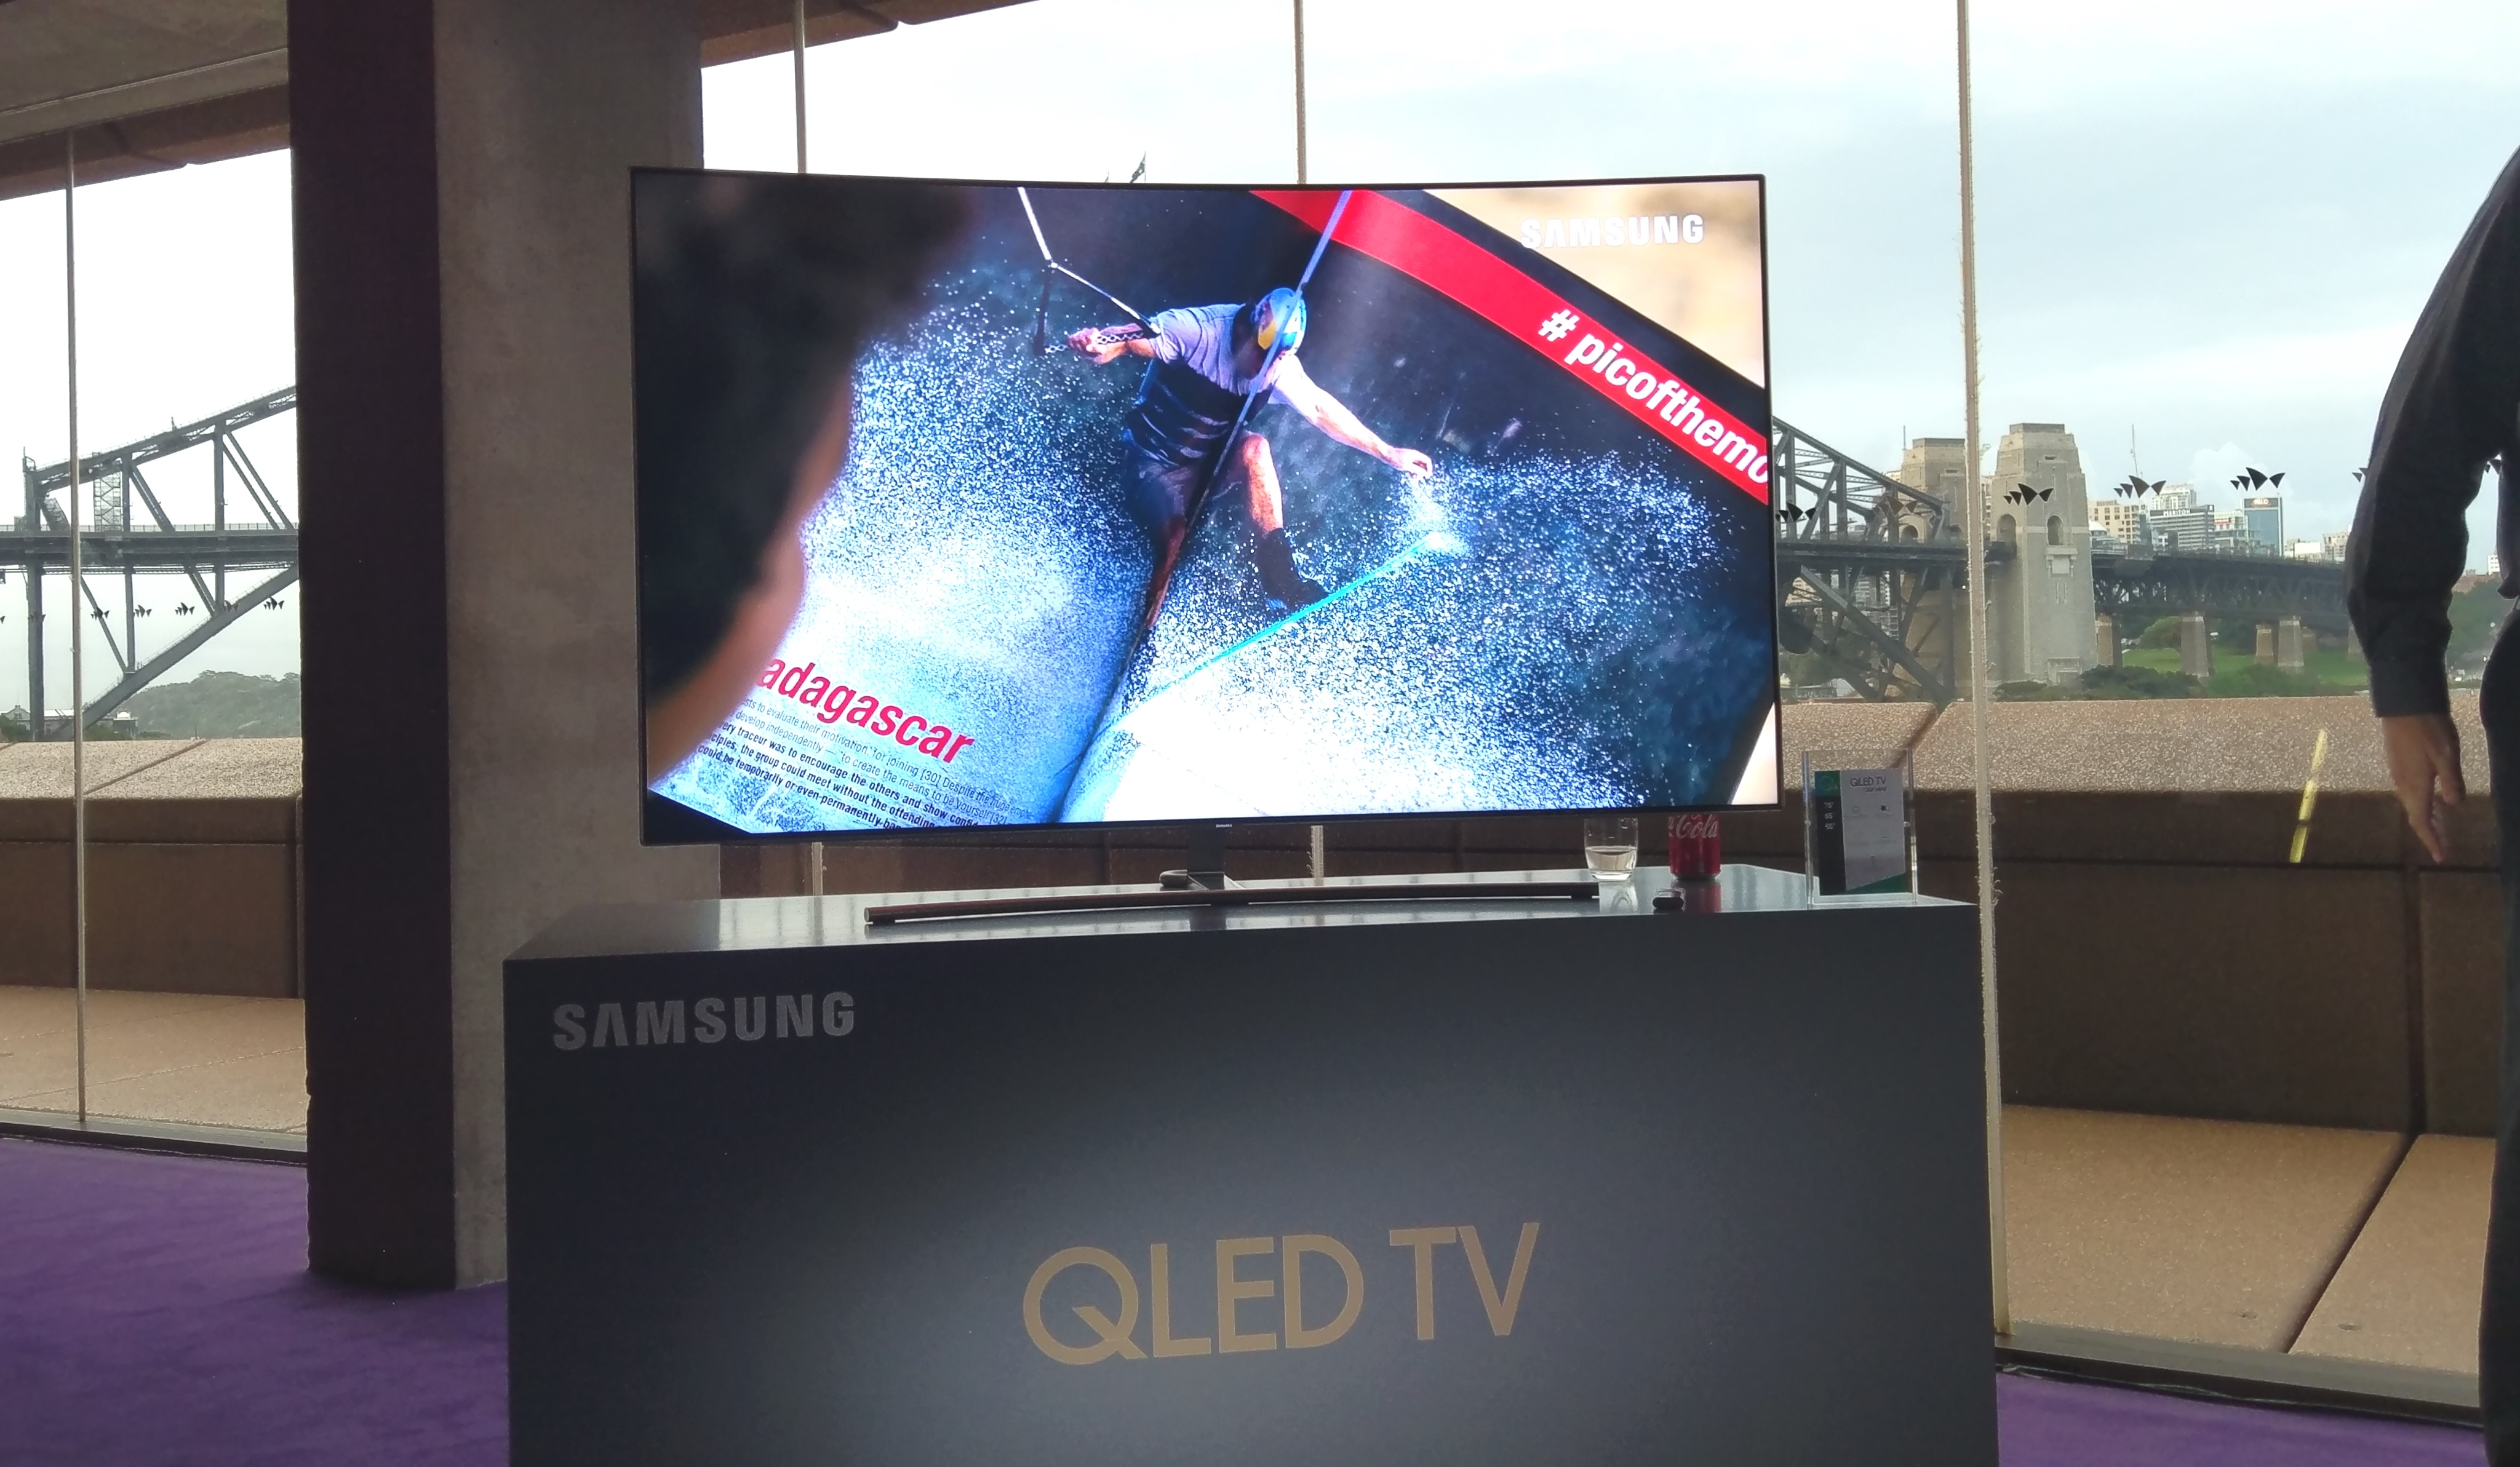 Samsung QLED Opera House Samsung Show Off QLED At Launch Event